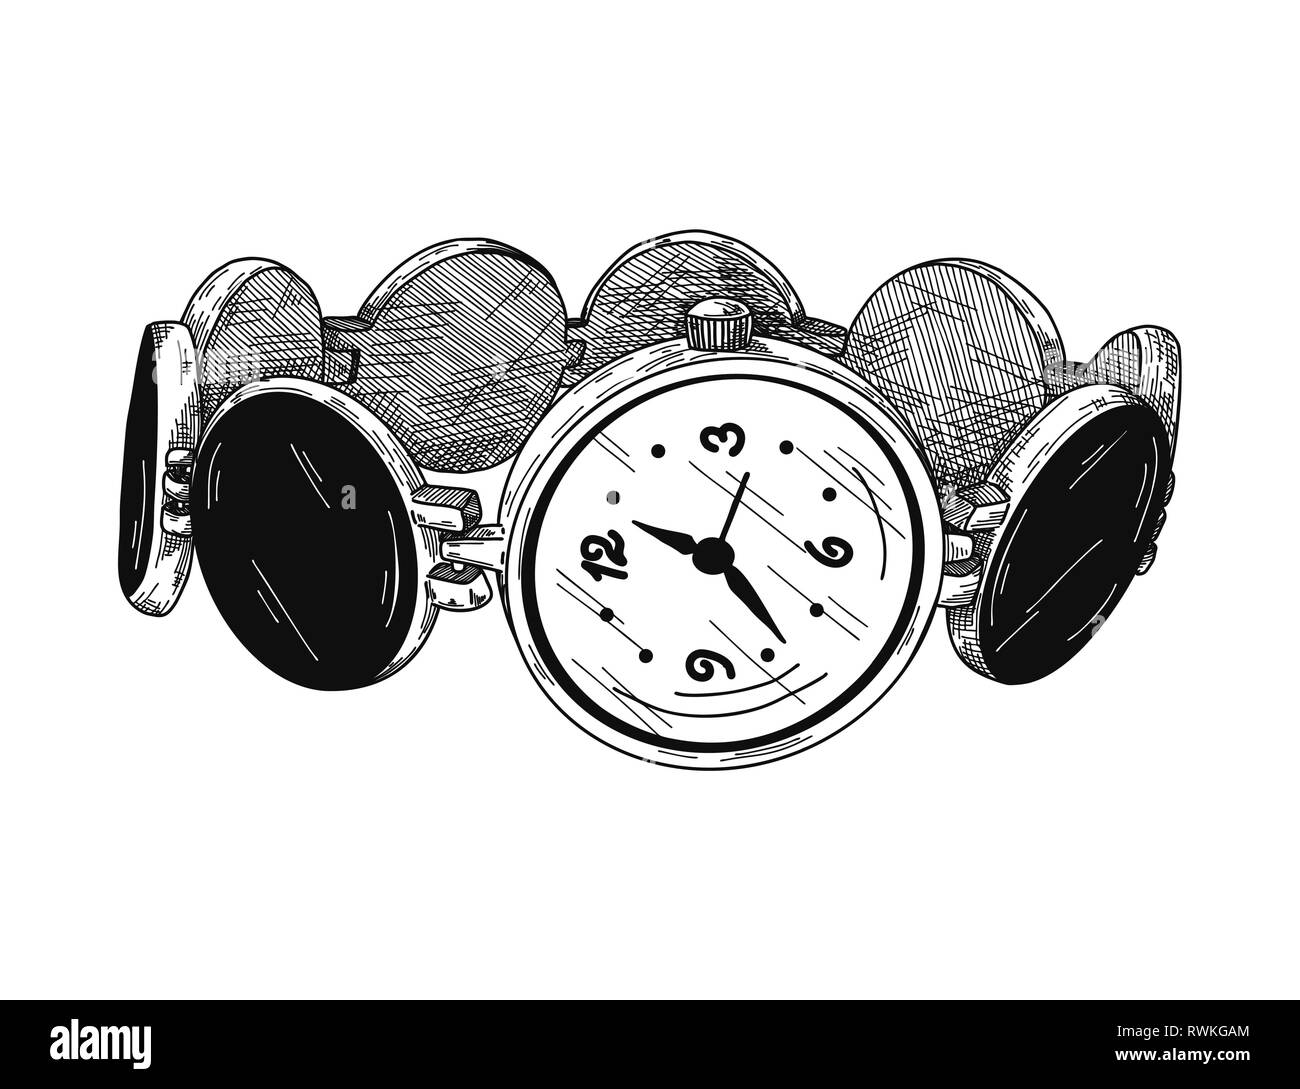 Realistic sketch of a watch. Wristwatches on a metal bracelet. Vector - Stock Image